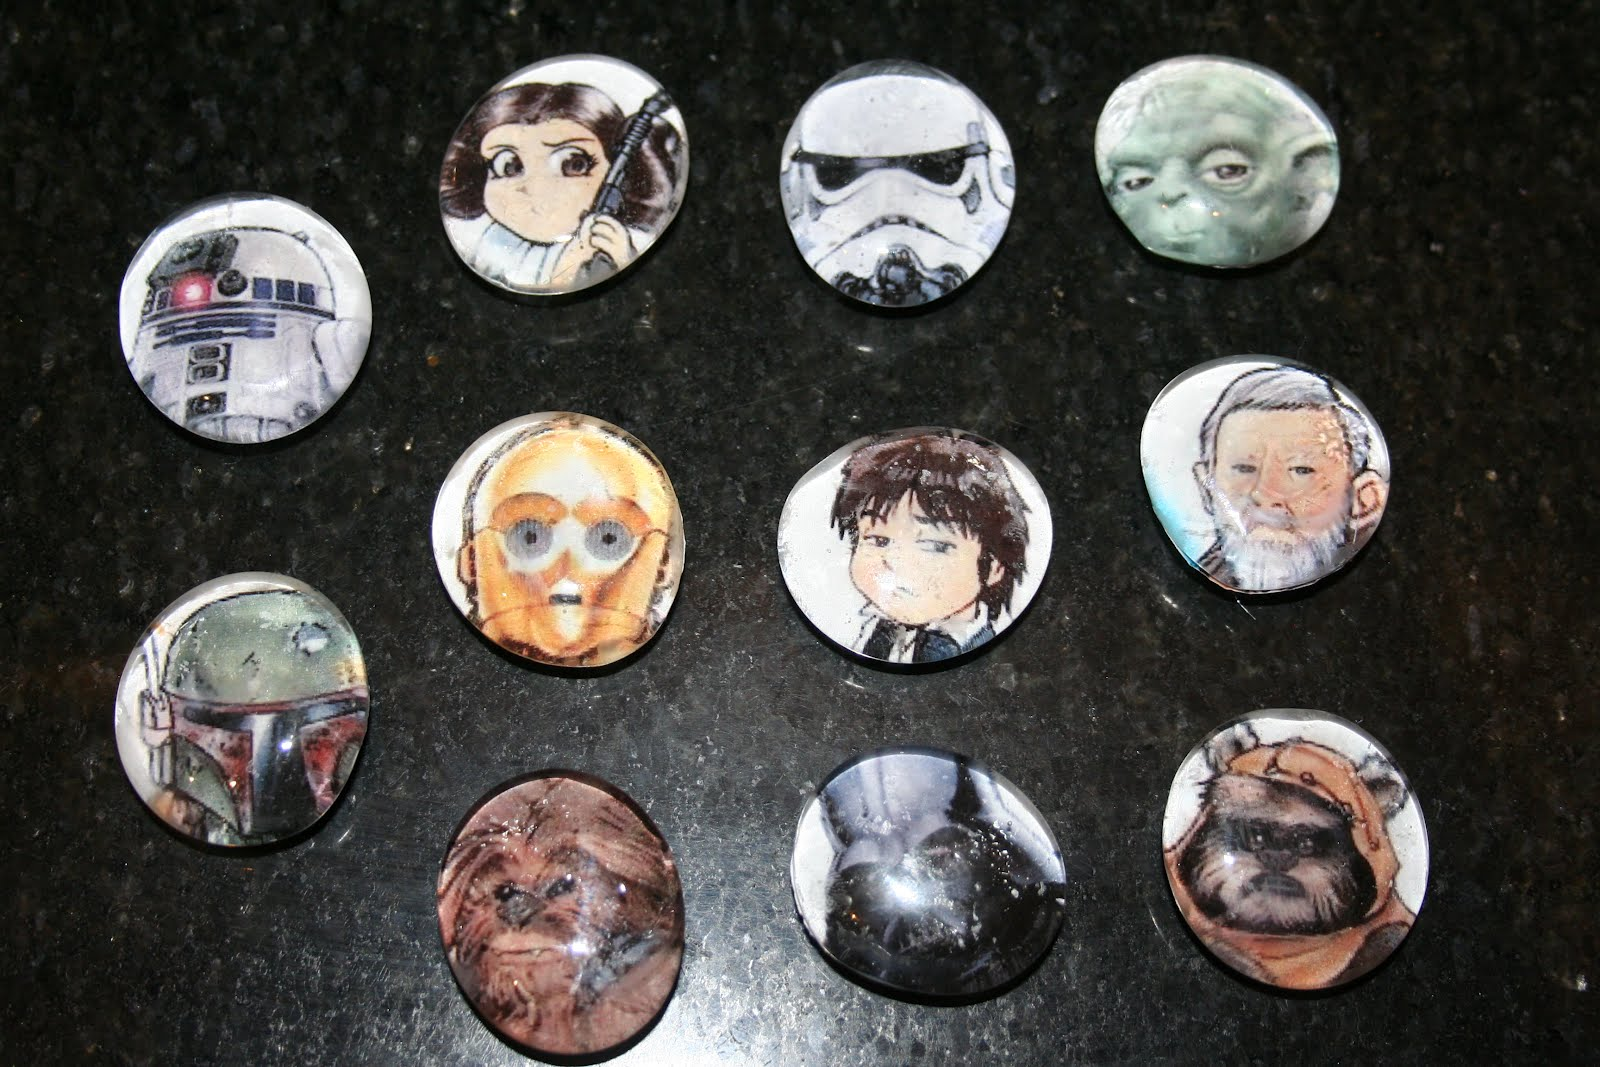 Confessions Of A Desperate Mom Star Wars Magnets